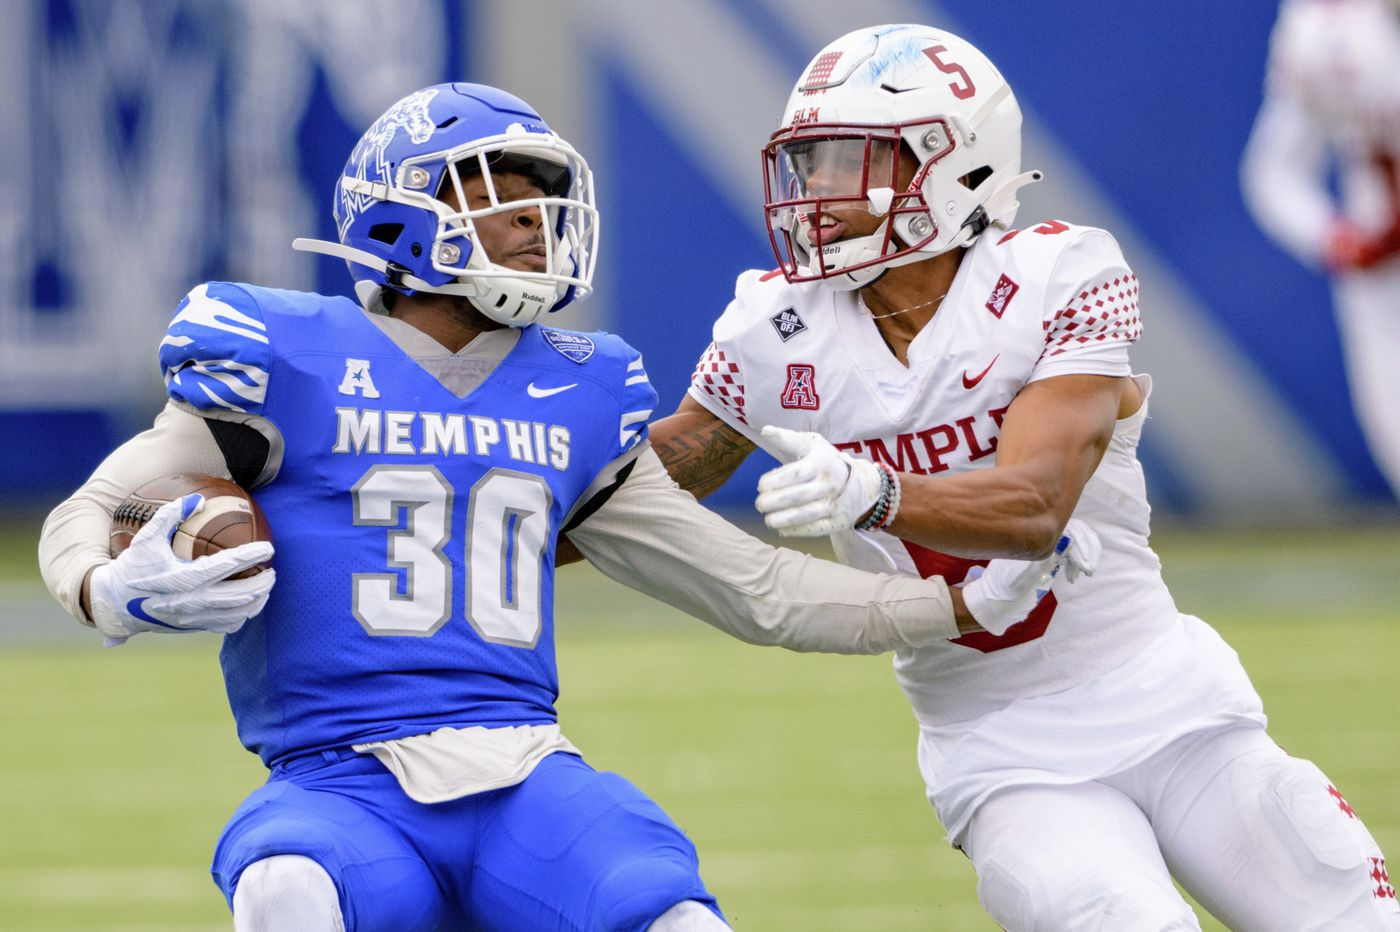 Turnovers cost Temple in 41-29 loss at Memphis